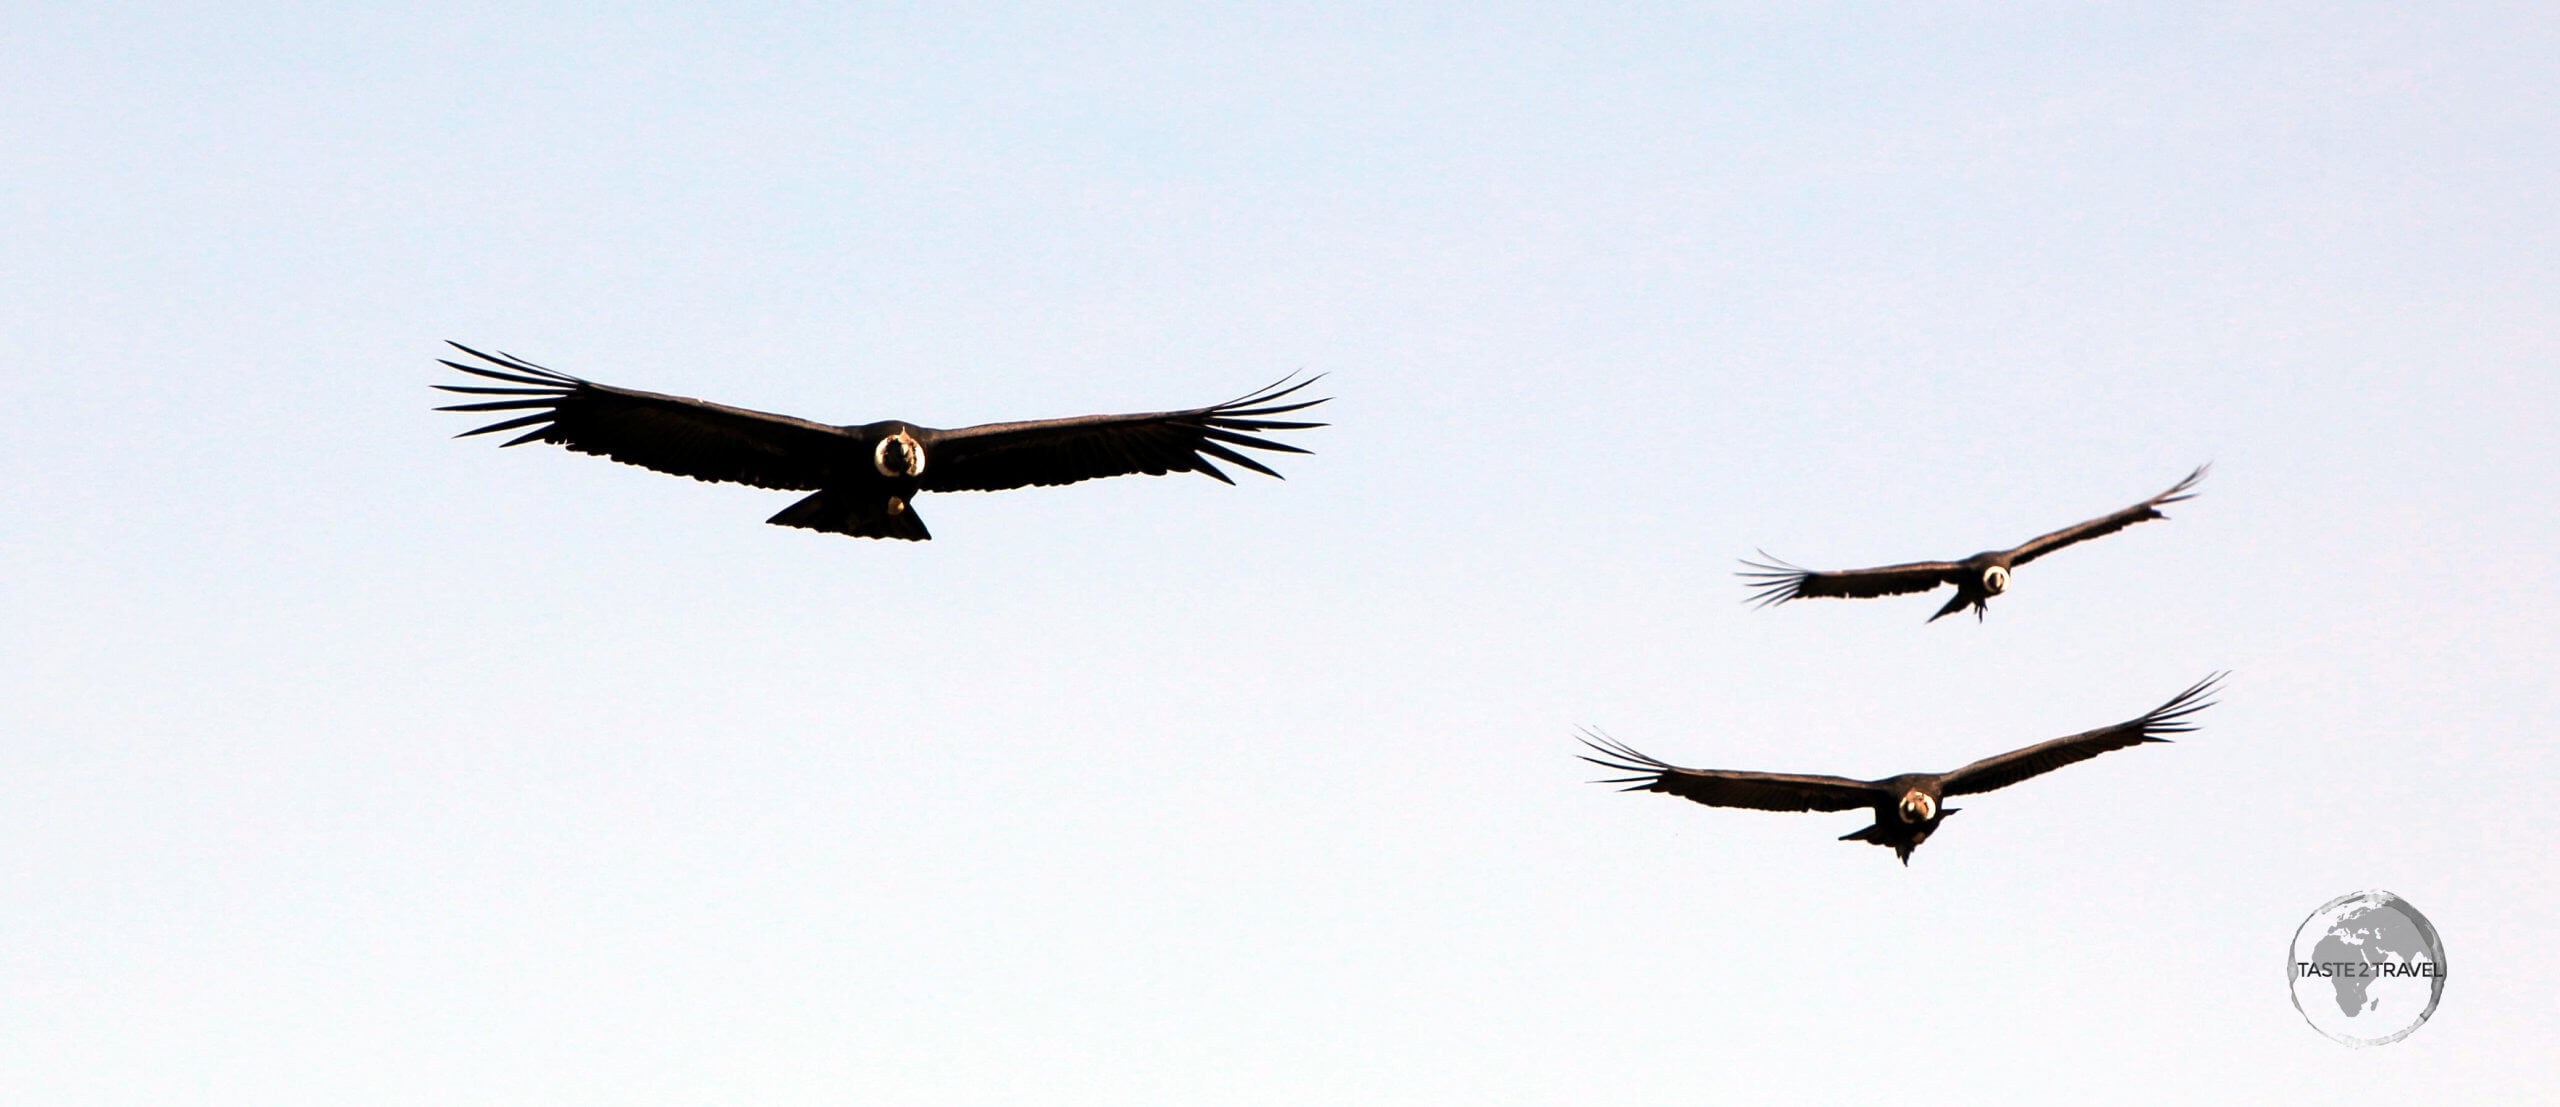 While the usually solitary Andean Condor can be seen throughout the Andes, the best place to see these striking raptors, in larger numbers, is in the Colca Canyon of southern Peru.